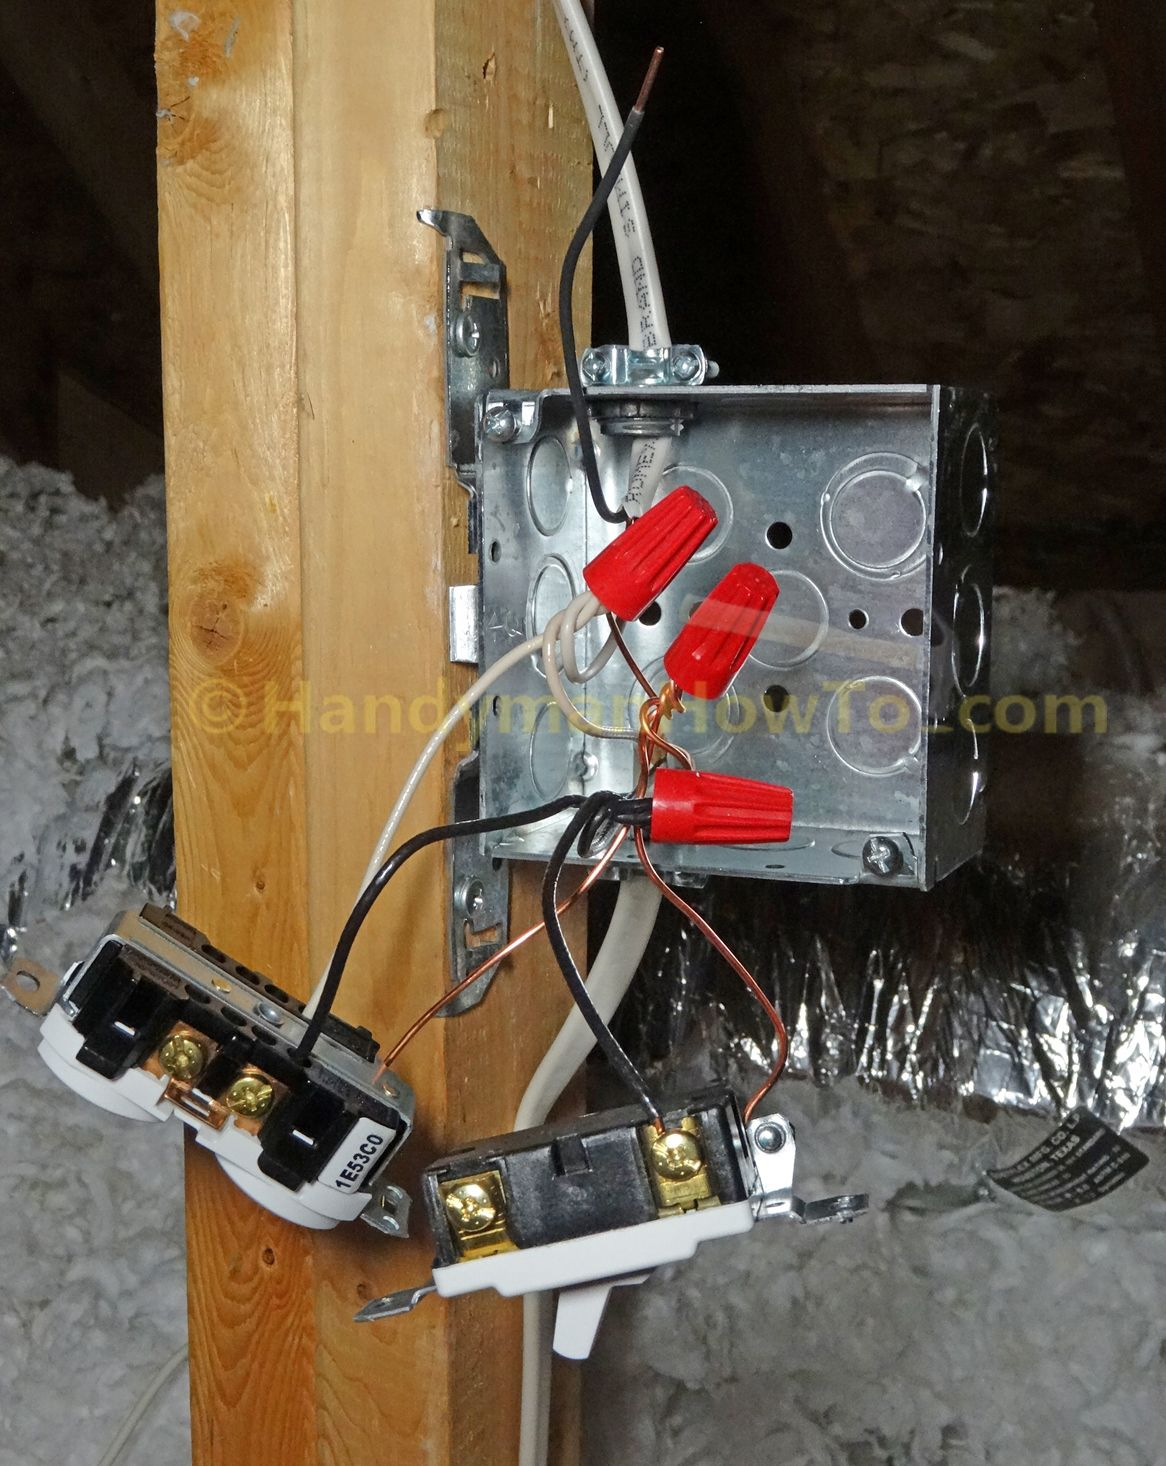 Attic Light and Outlet Junction Box Wiring Connections | House ...